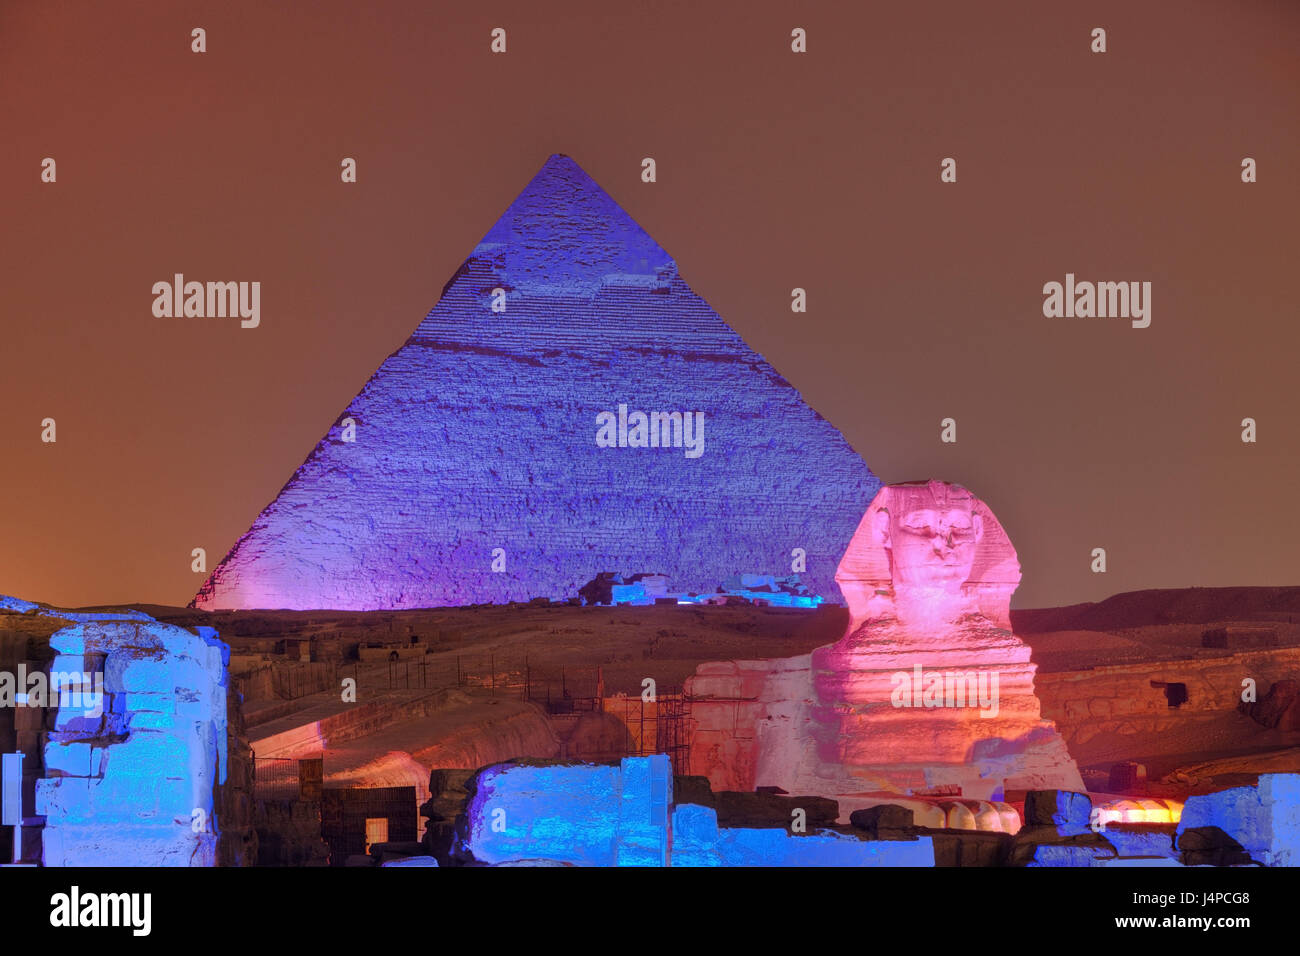 Light show in the pyramids of Gizeh, Egypt, Cairo, - Stock Image